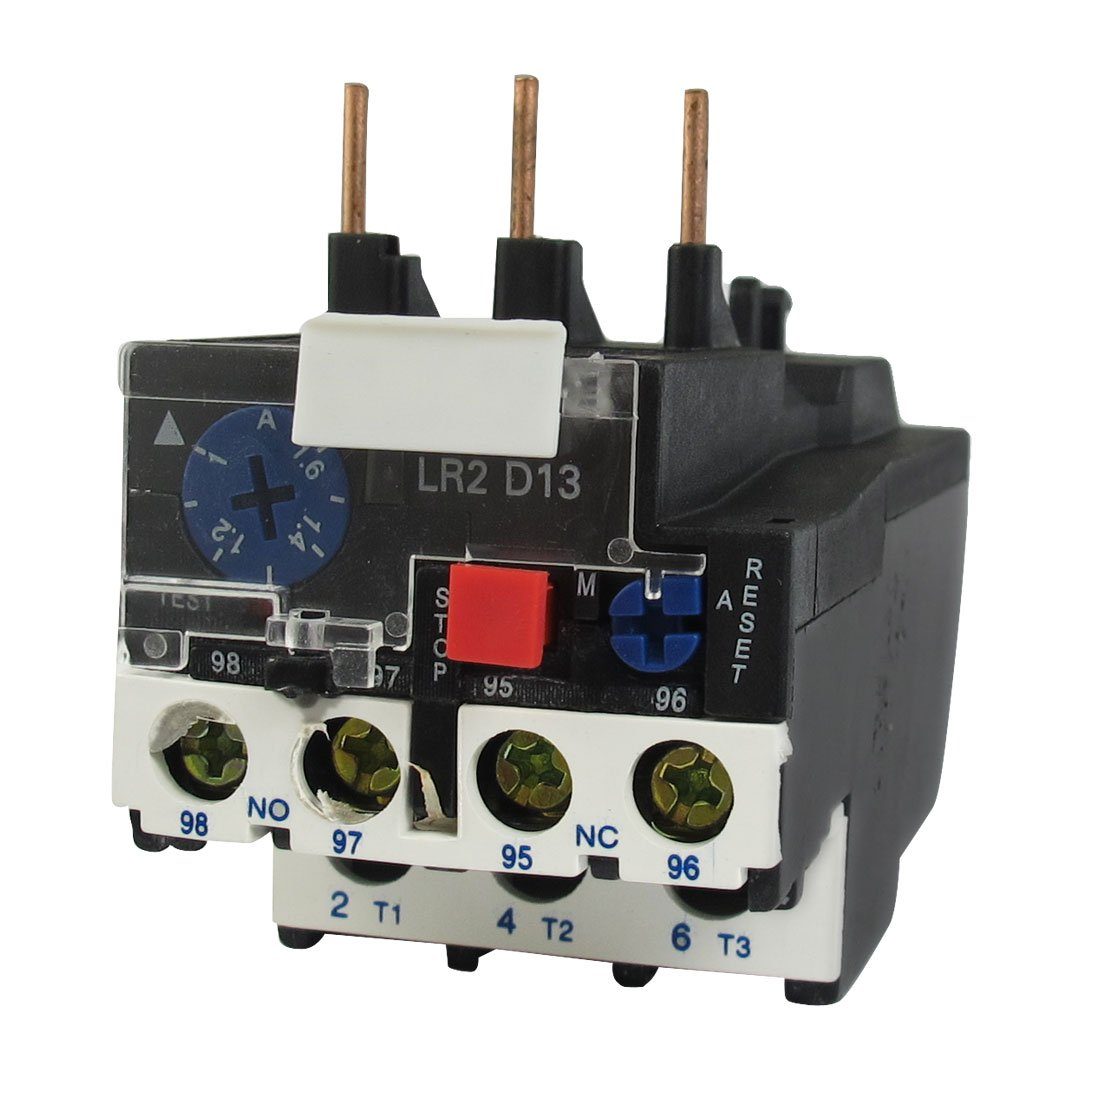 цена на LR2-13 1.6A 1-1.6A 3-Phase 1NO 1NC Electric Thermal Overload Relay